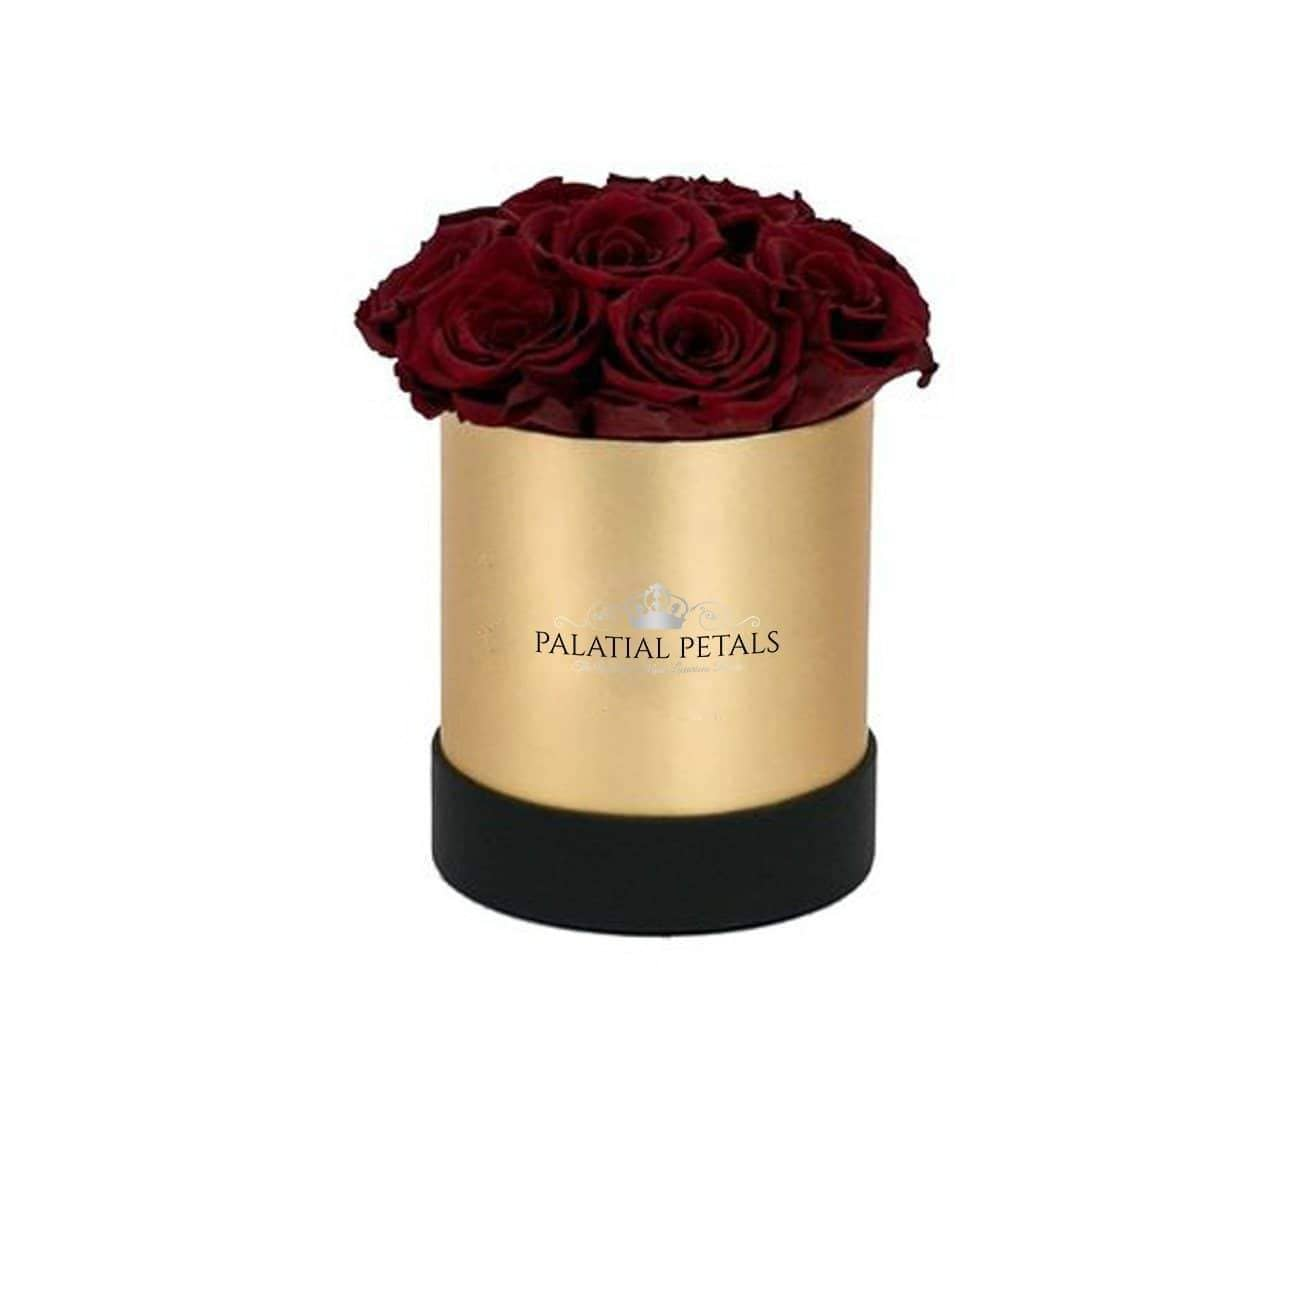 Red Wine Roses That Last A Year - Petite Rose Box - Palatial Petals